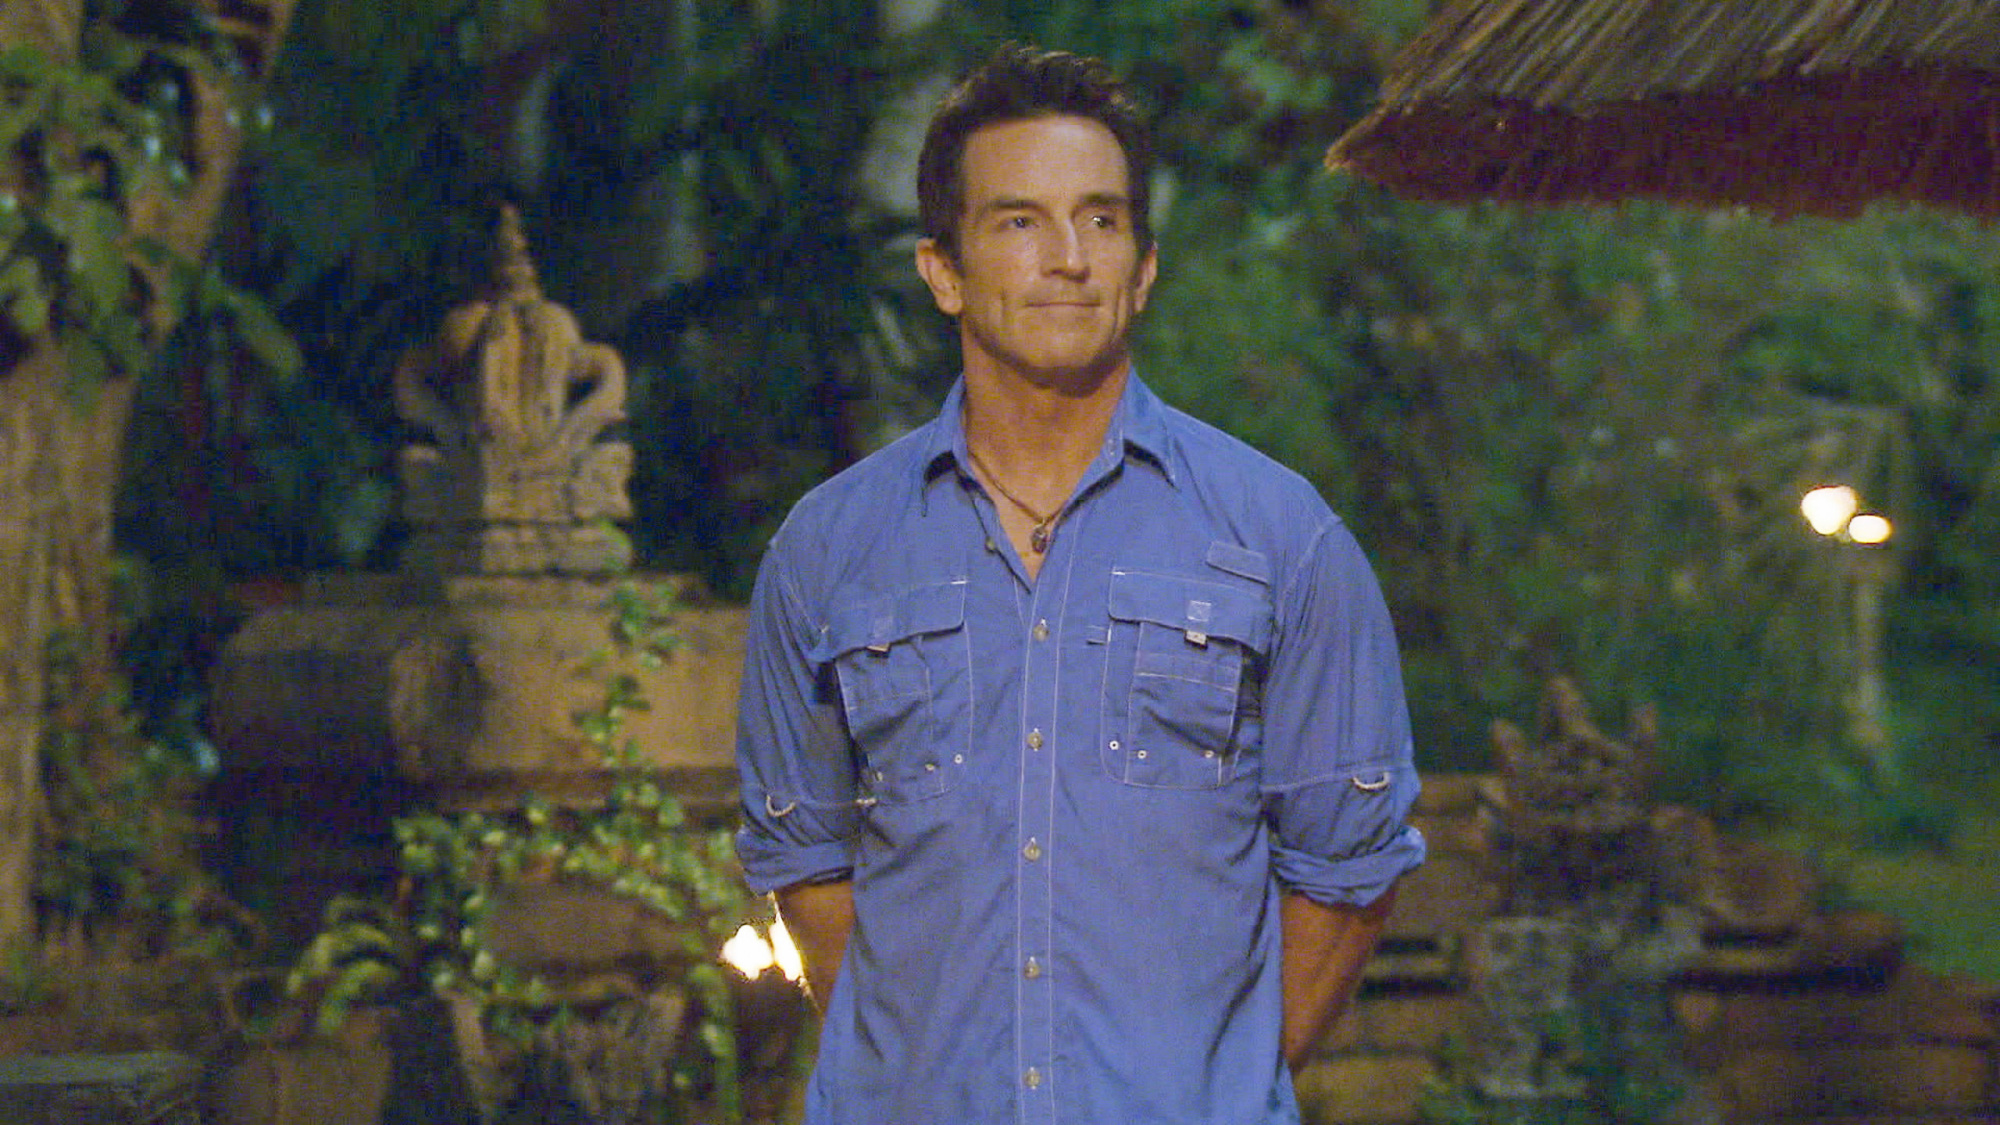 Jeff at Tribal Council in Season 28 Episode 6